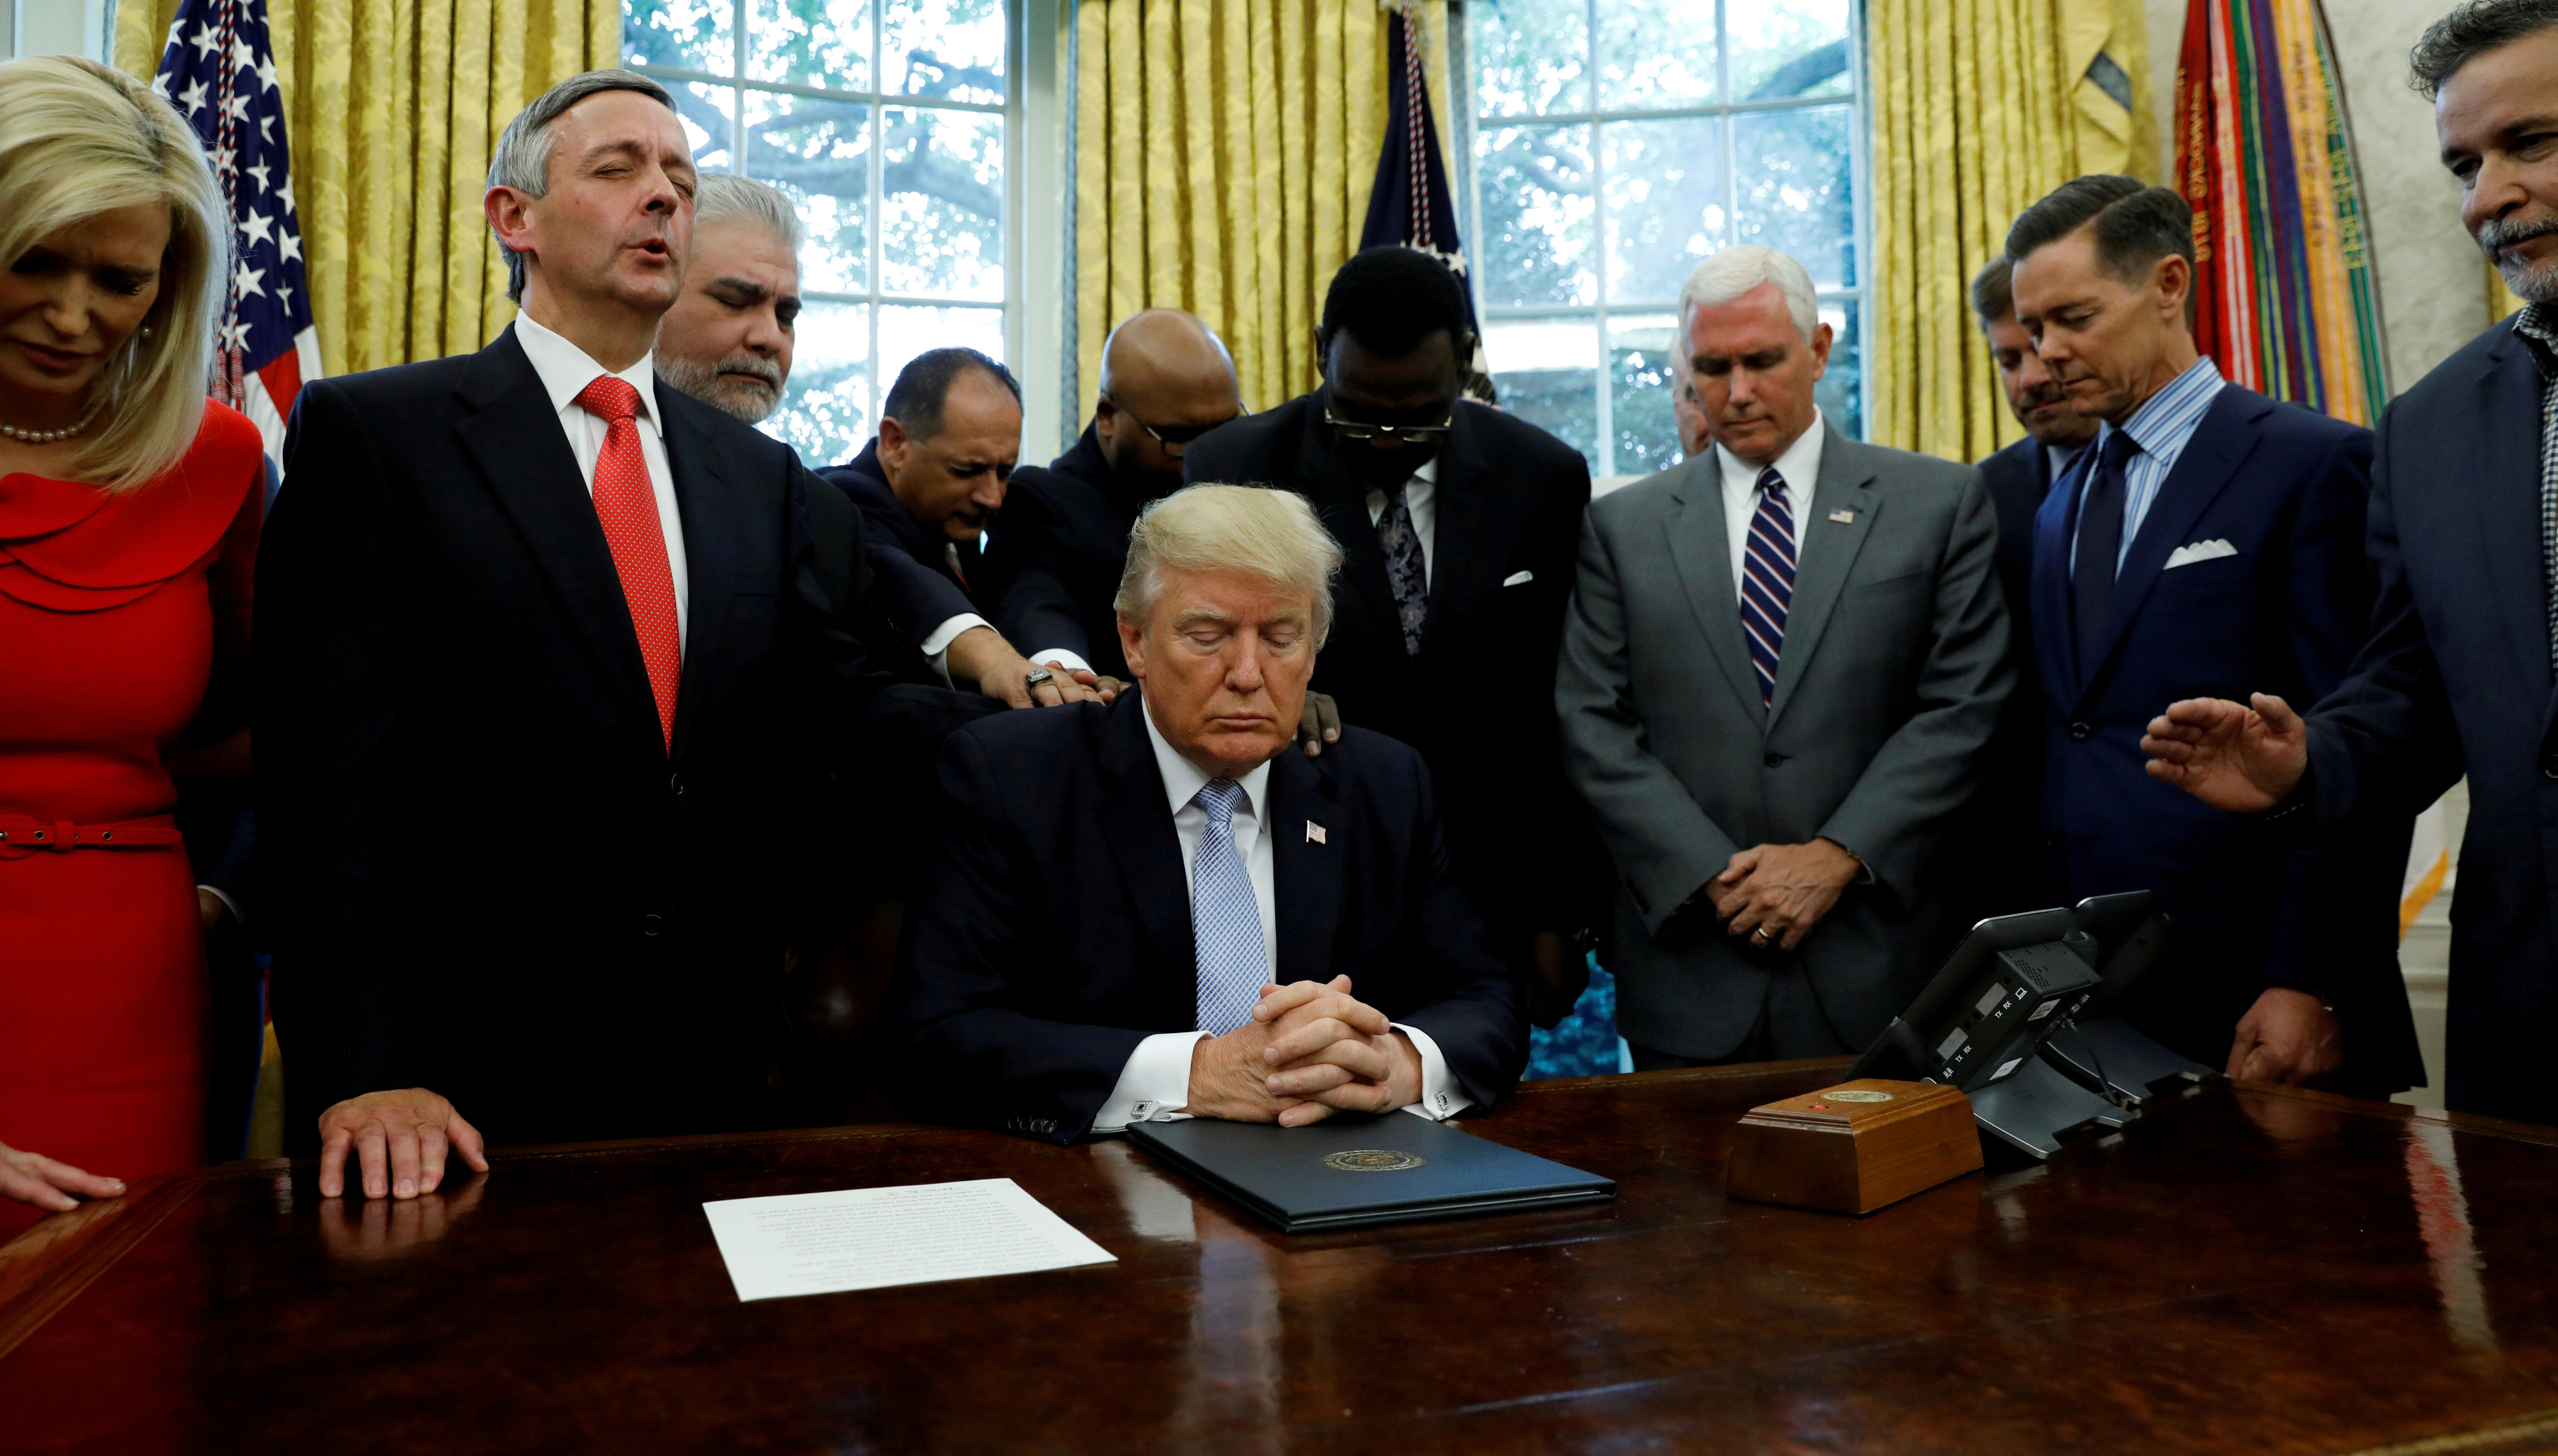 Faith leaders place their hands on the shoulders of President Donald Trump in the Oval Office as he takes part in a prayer on